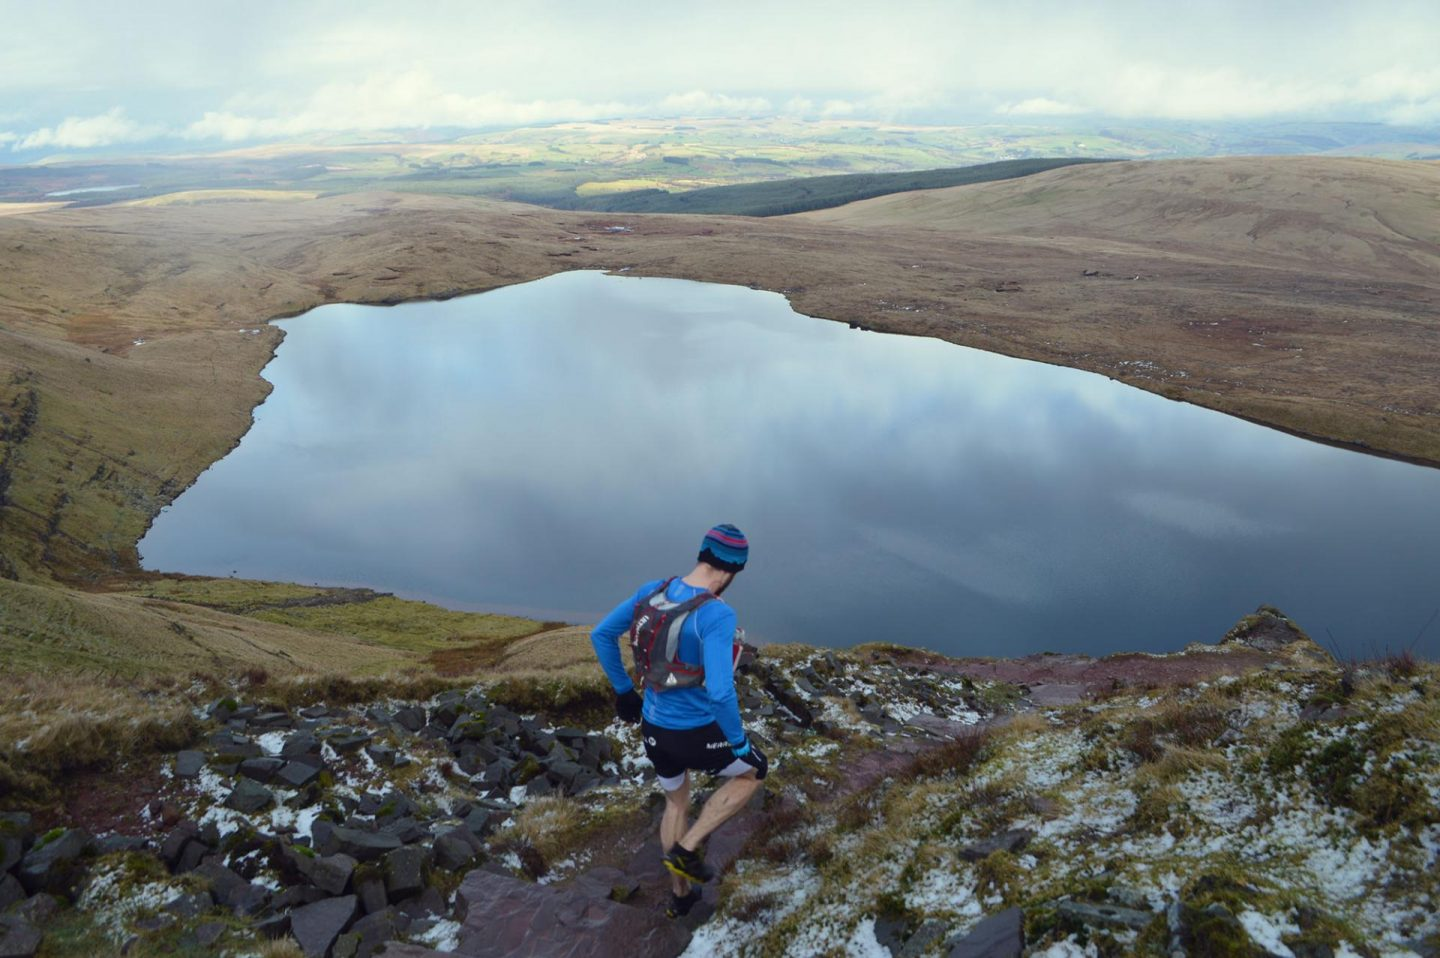 Trail Running For Beginners | How To Start Trail Running The Girl Outdoors Sian Lewis